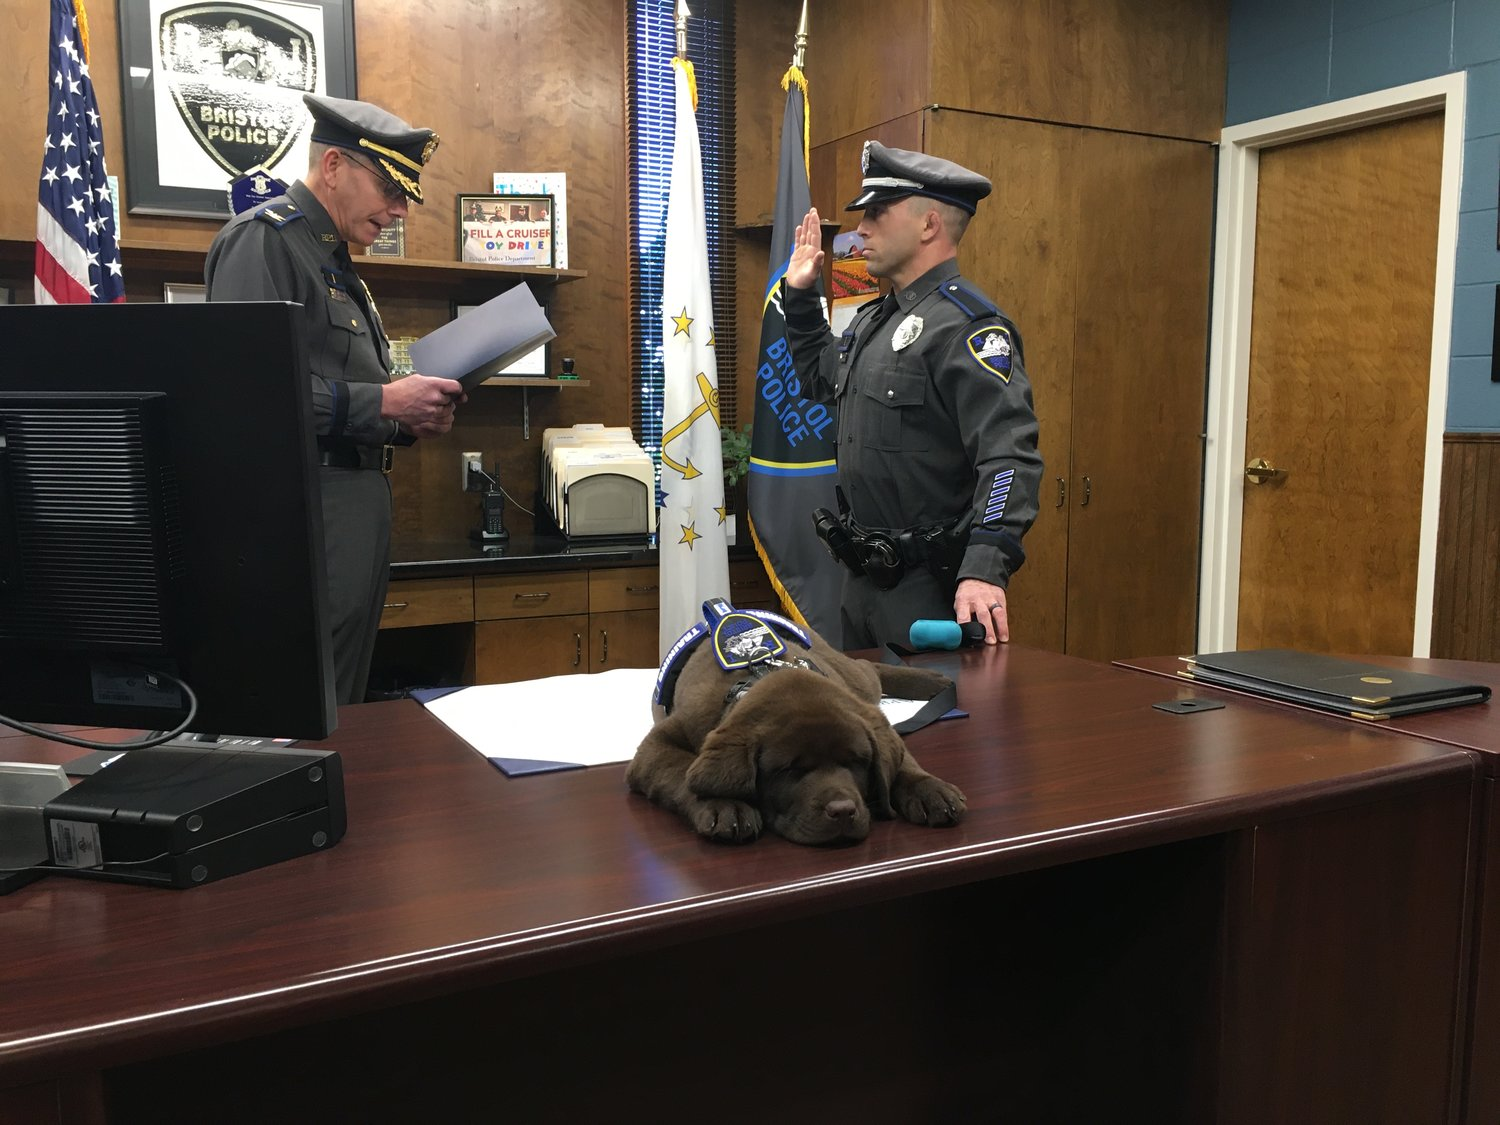 Bristol Chief of Police Kevin Lynch swears in Brody (yes, he's sleeping on the chief's desk), assisted by his new partner, School Resource Officer Keith Medeiros.